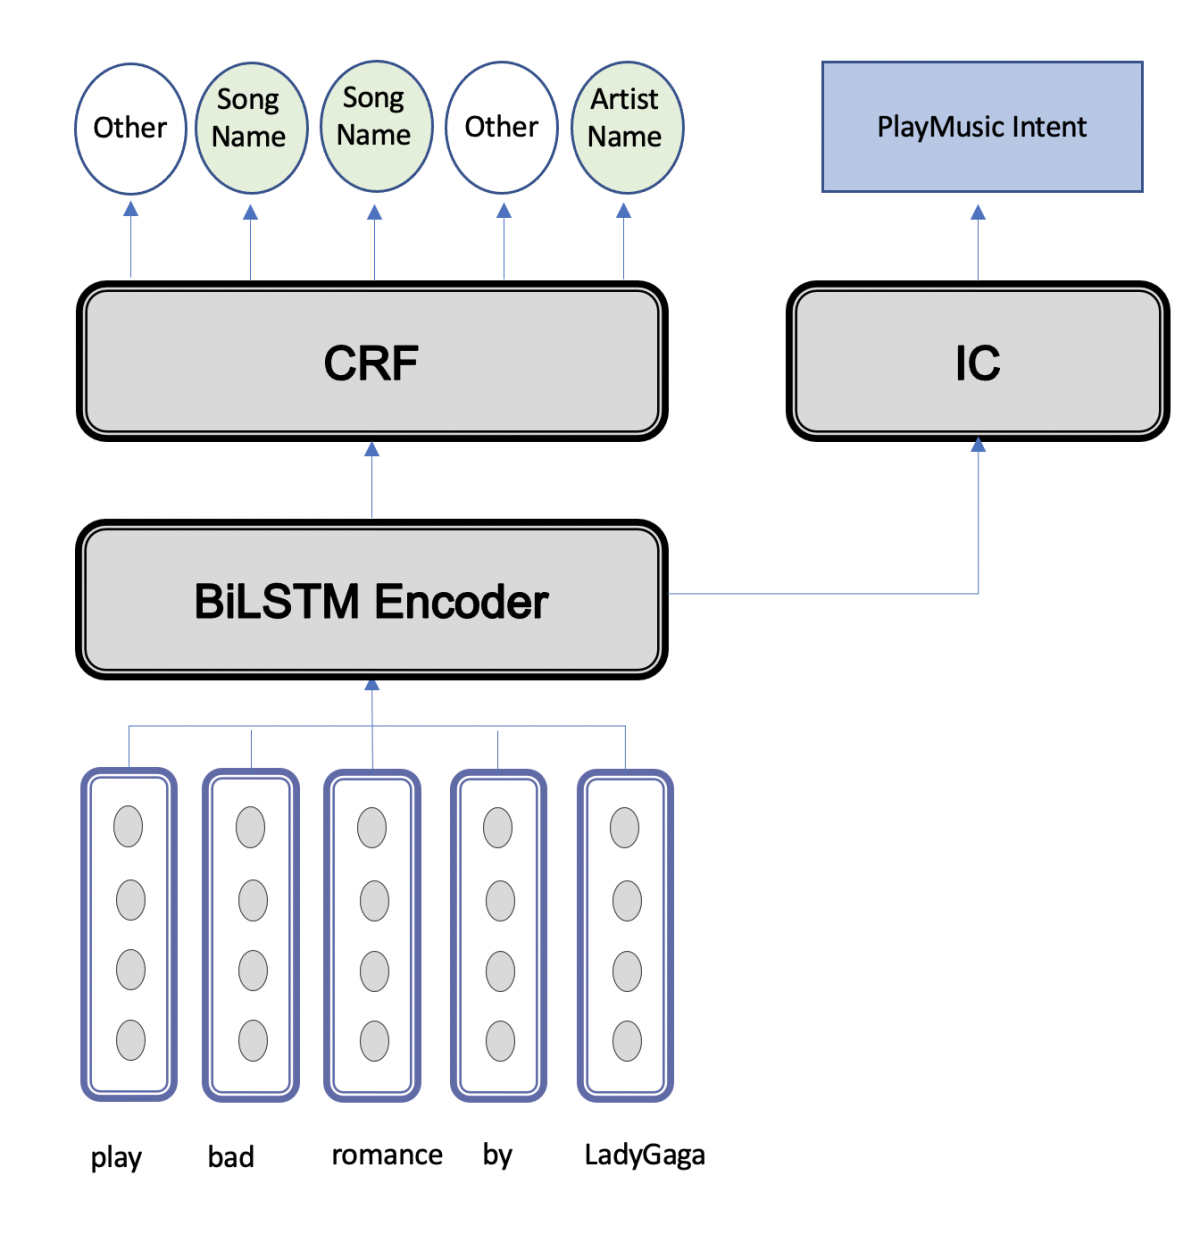 The architecture of our slot-filling and intent classification model